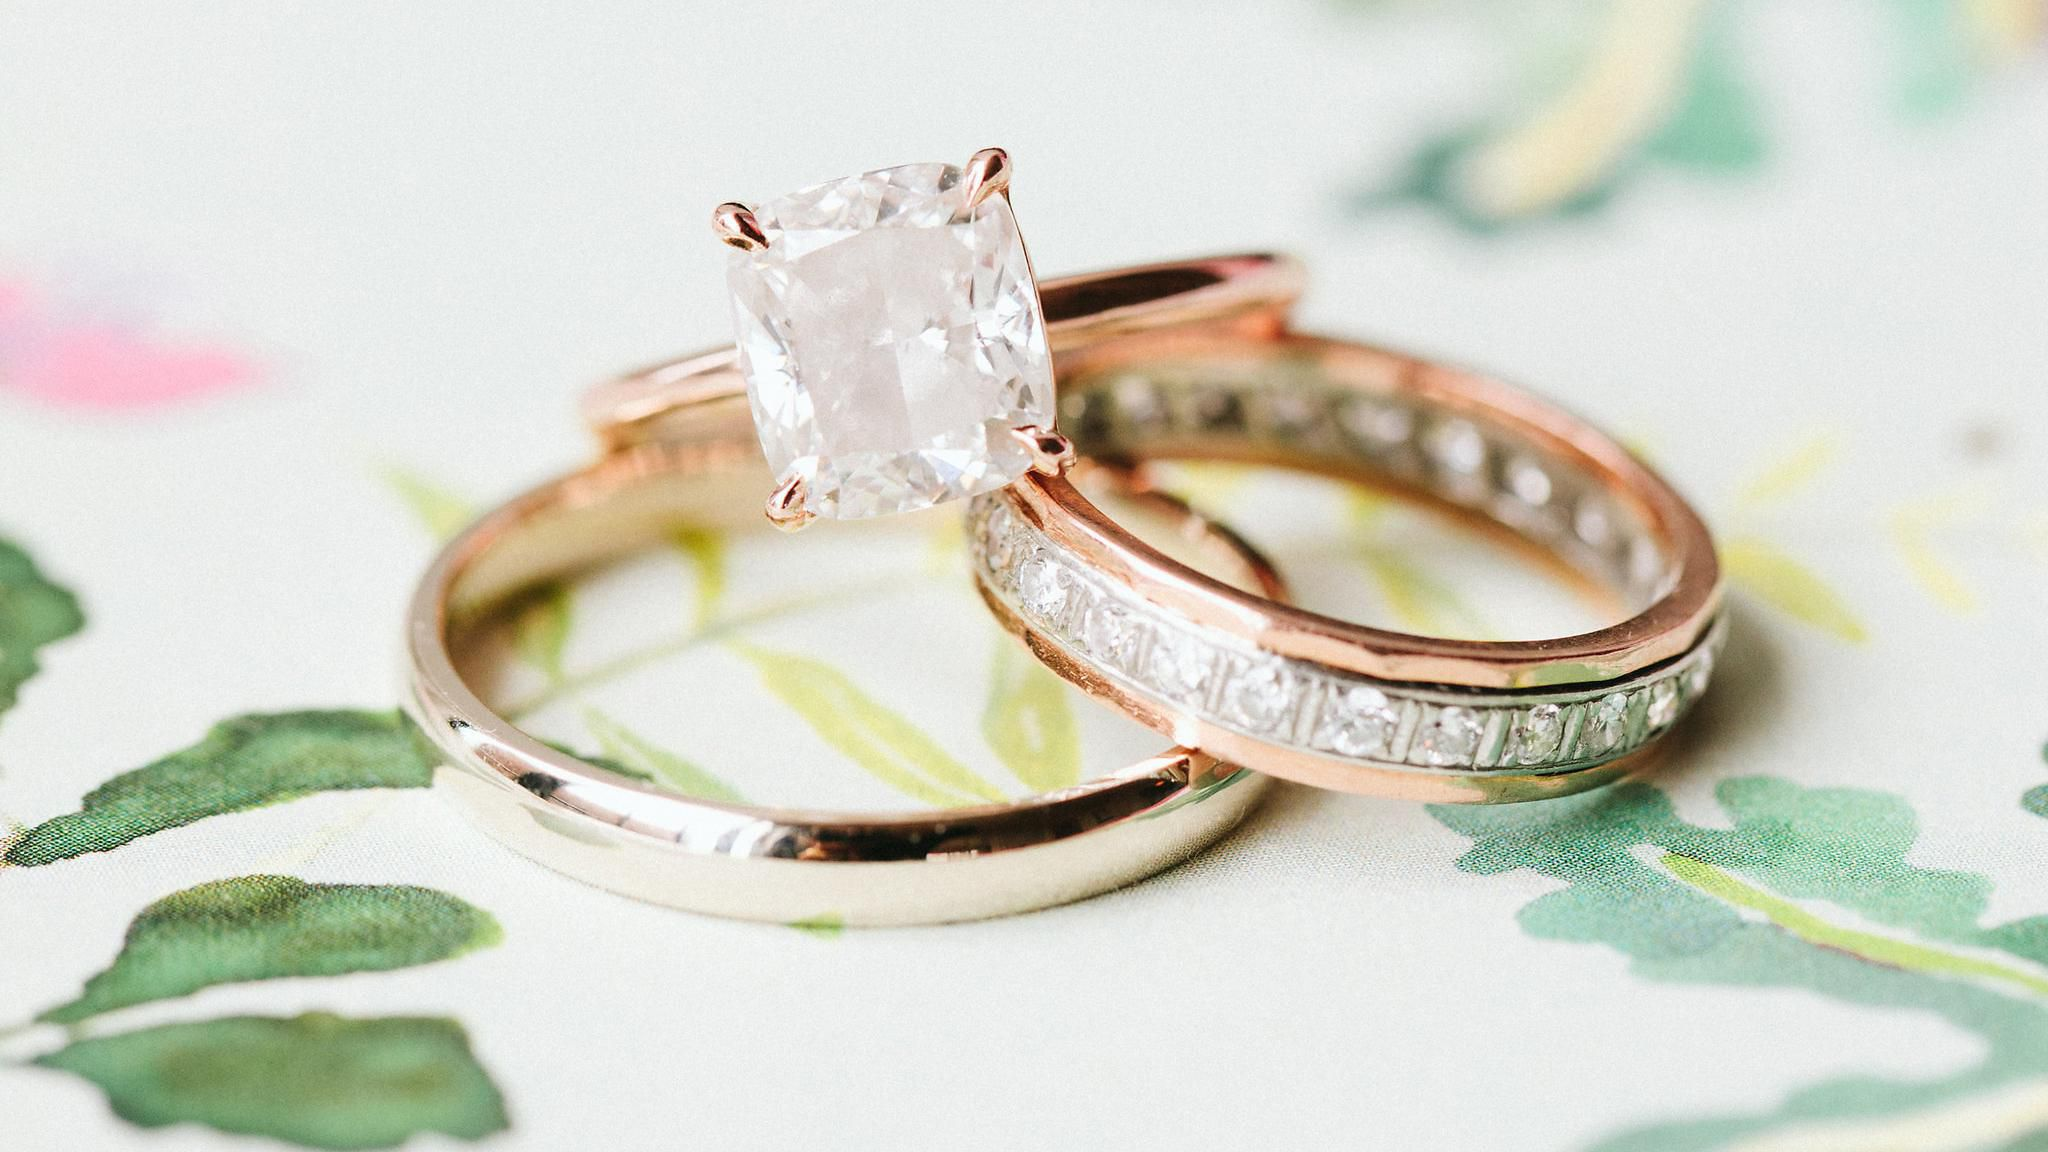 What Are Some Tips to Buy Diamond Ring For Couples?